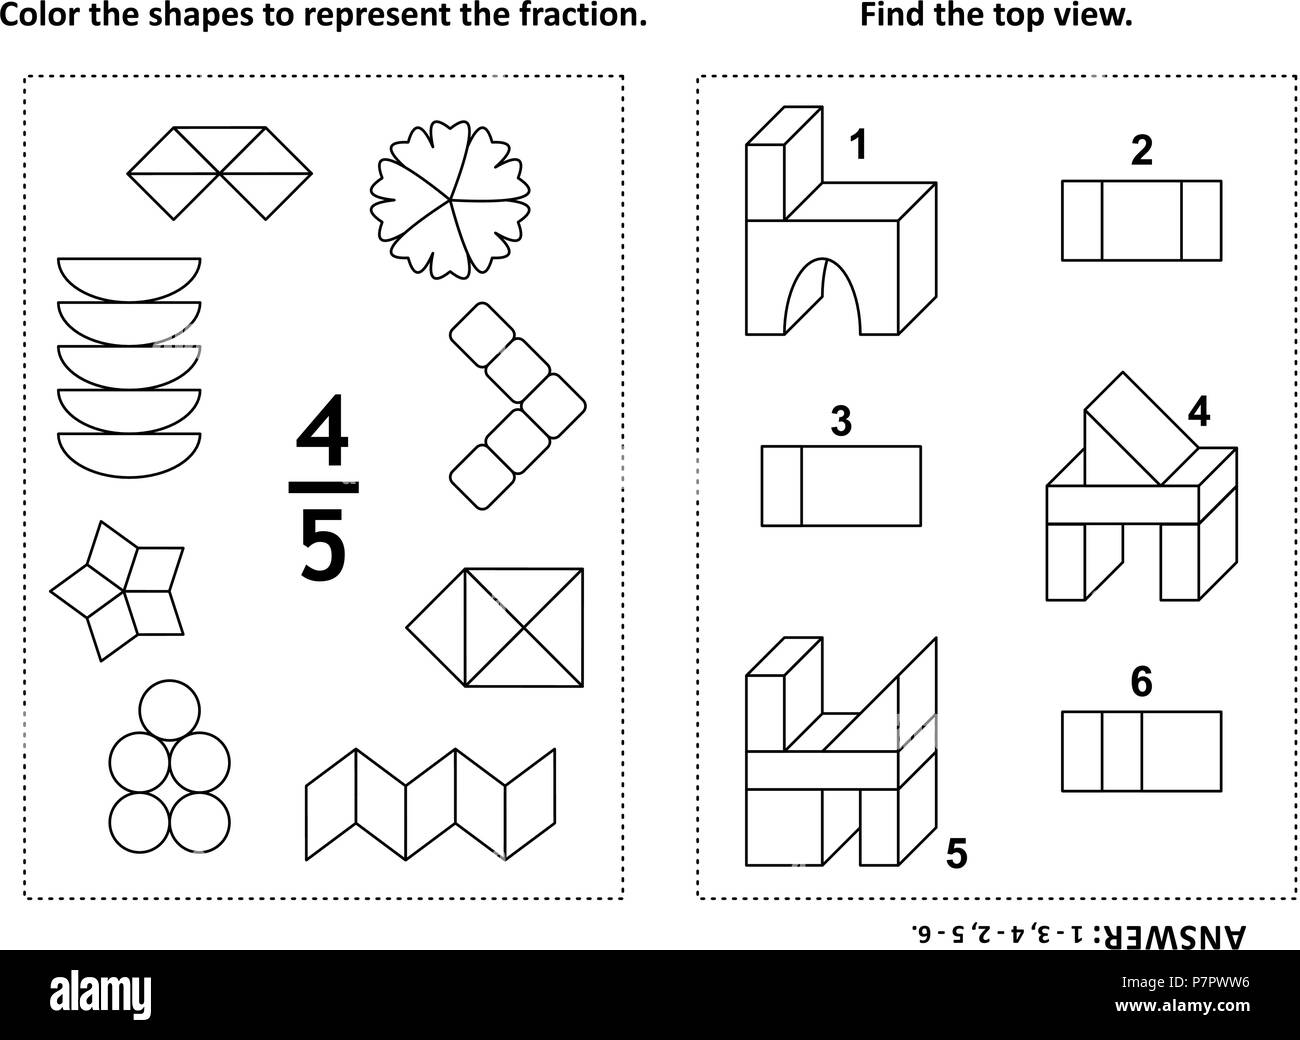 Two Visual Math Puzzles And Coloring Pages Color The Shapes To Represent The Fraction Find The Top View Black And White Answer Included Stock Vector Image Art Alamy